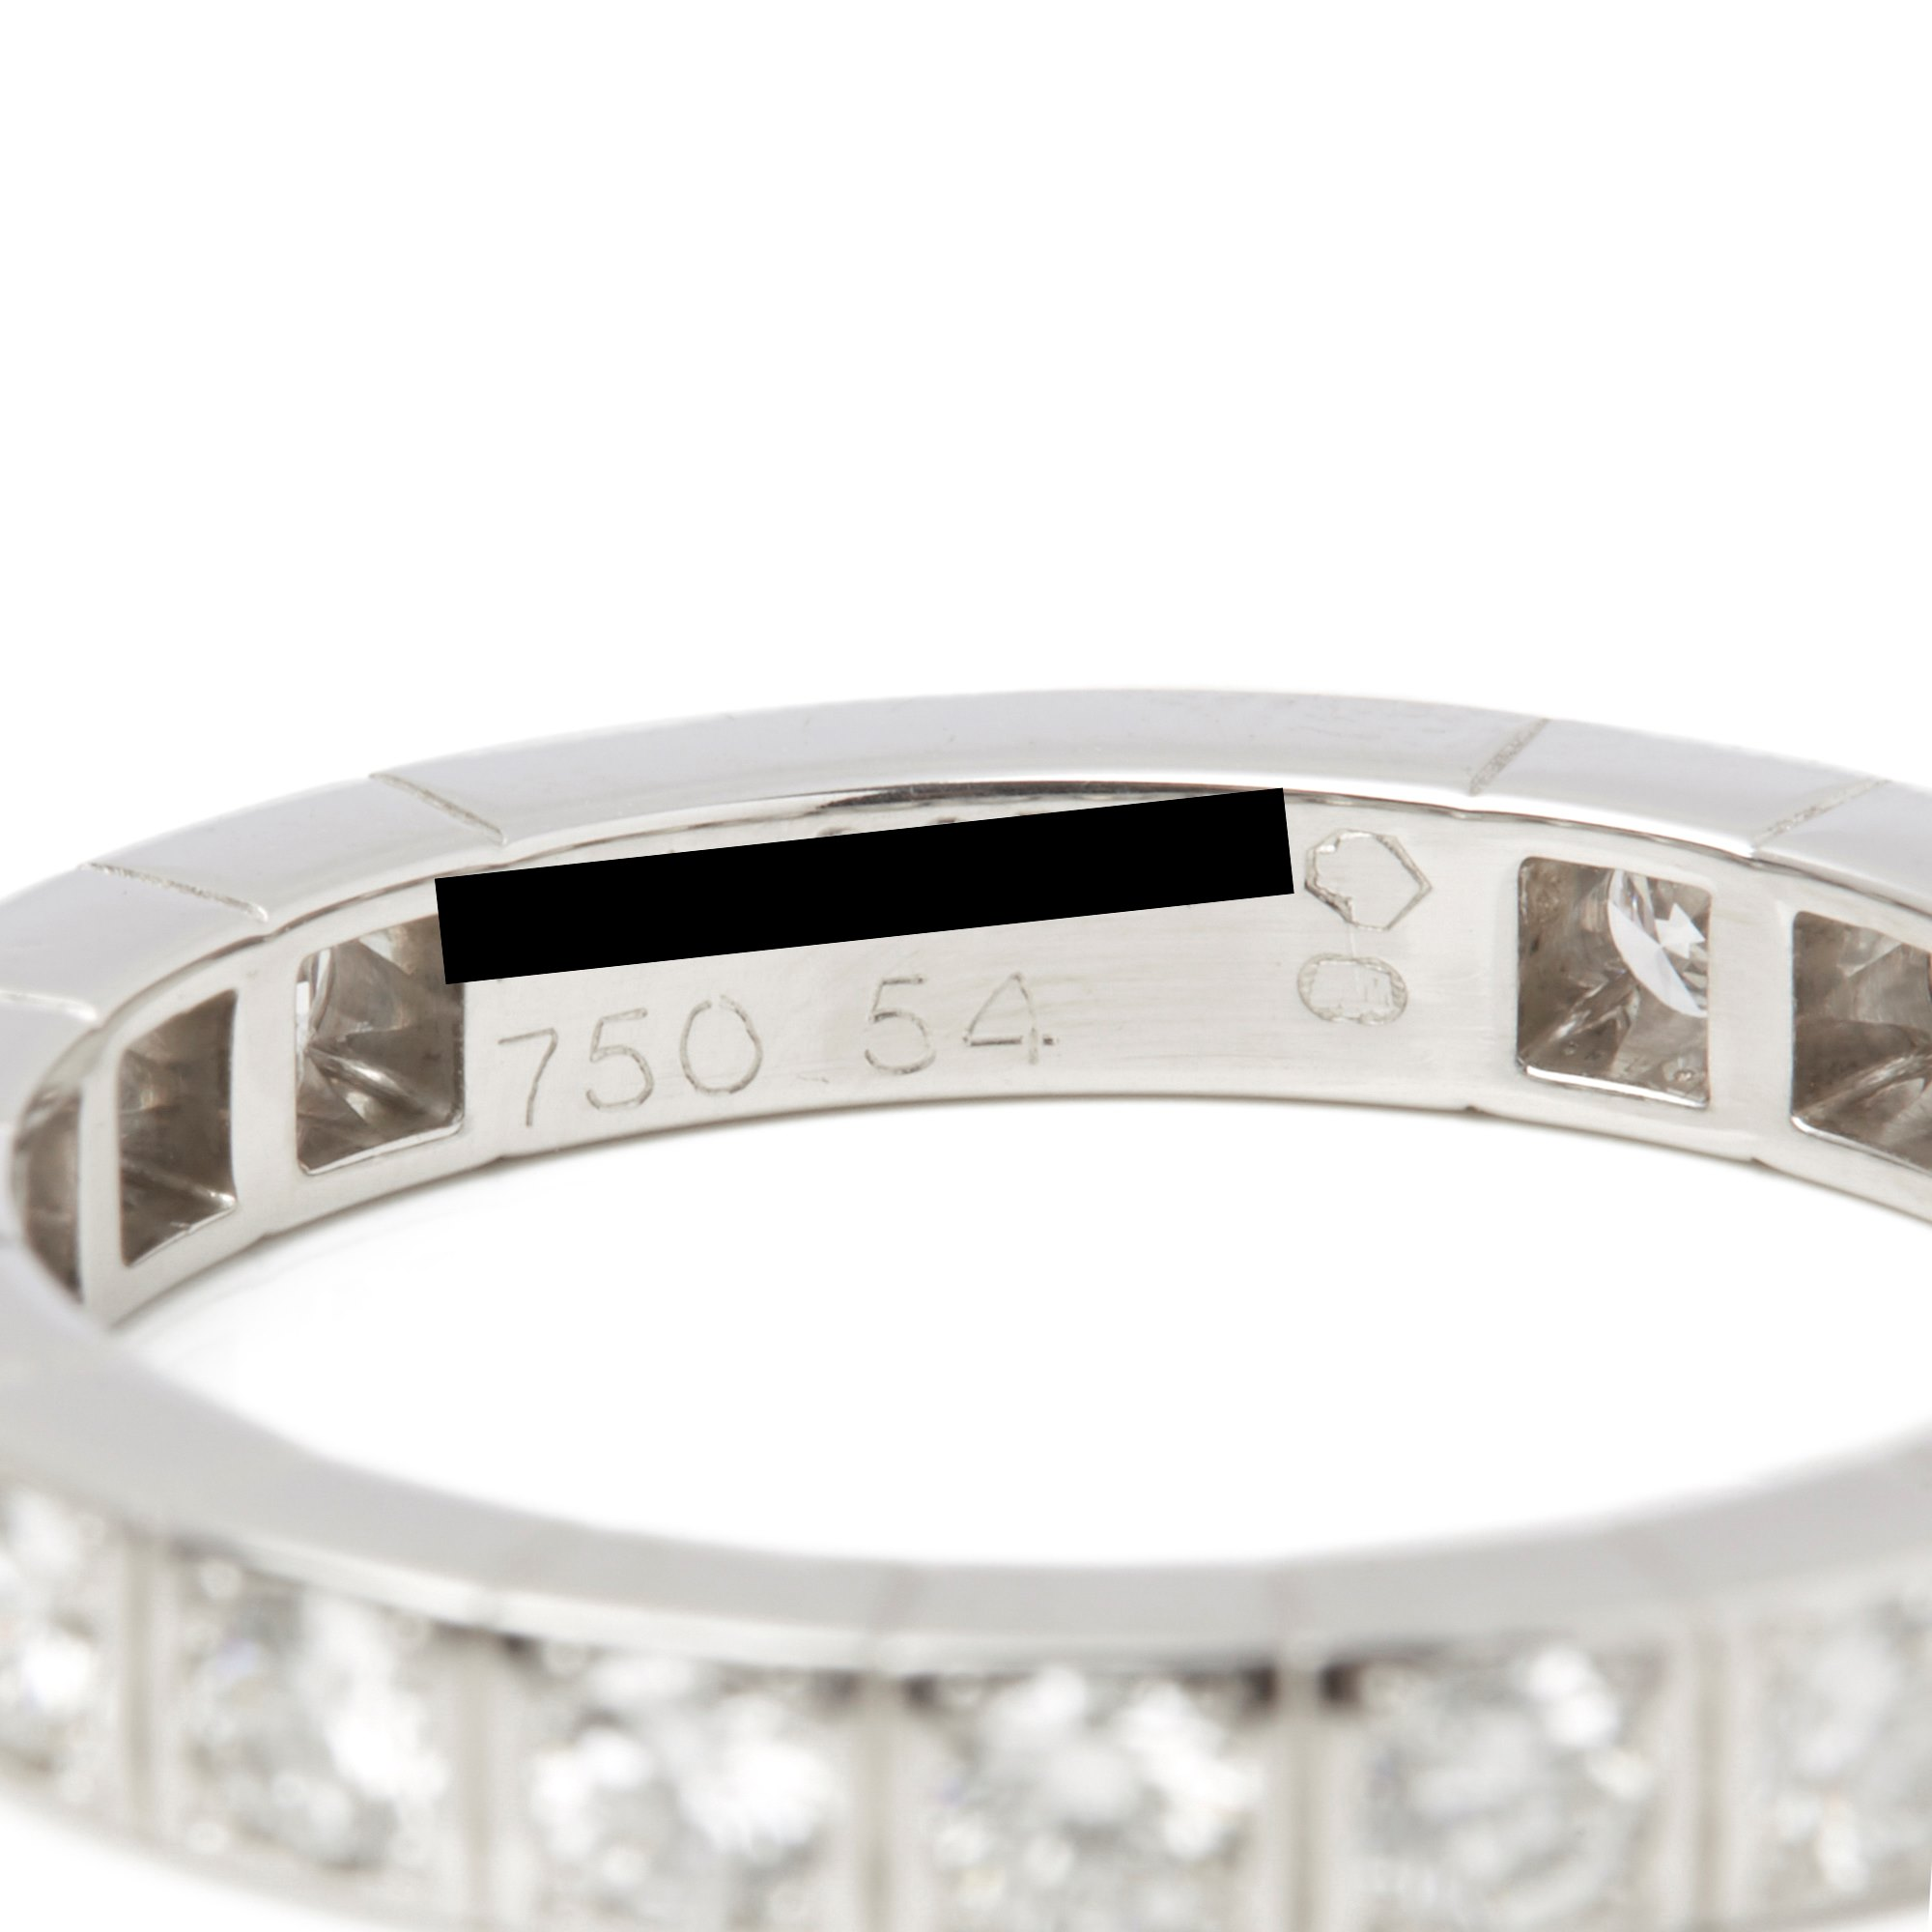 Cartier 18k White Gold Diamond Lanieres Ring